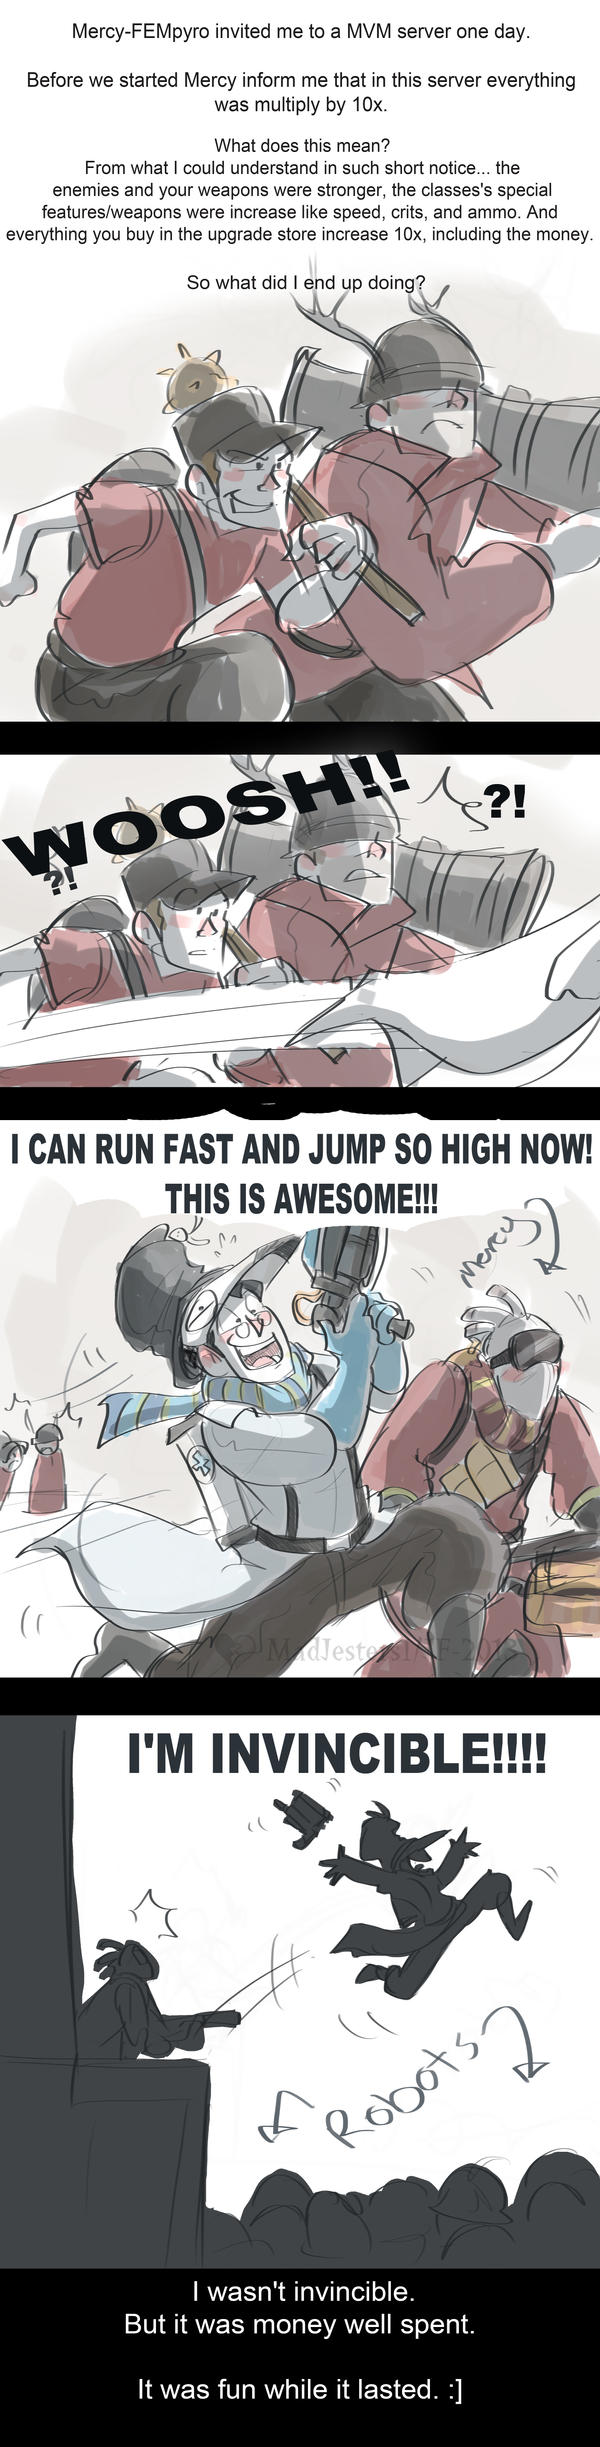 TF2-The 10x Servers by MadJesters1